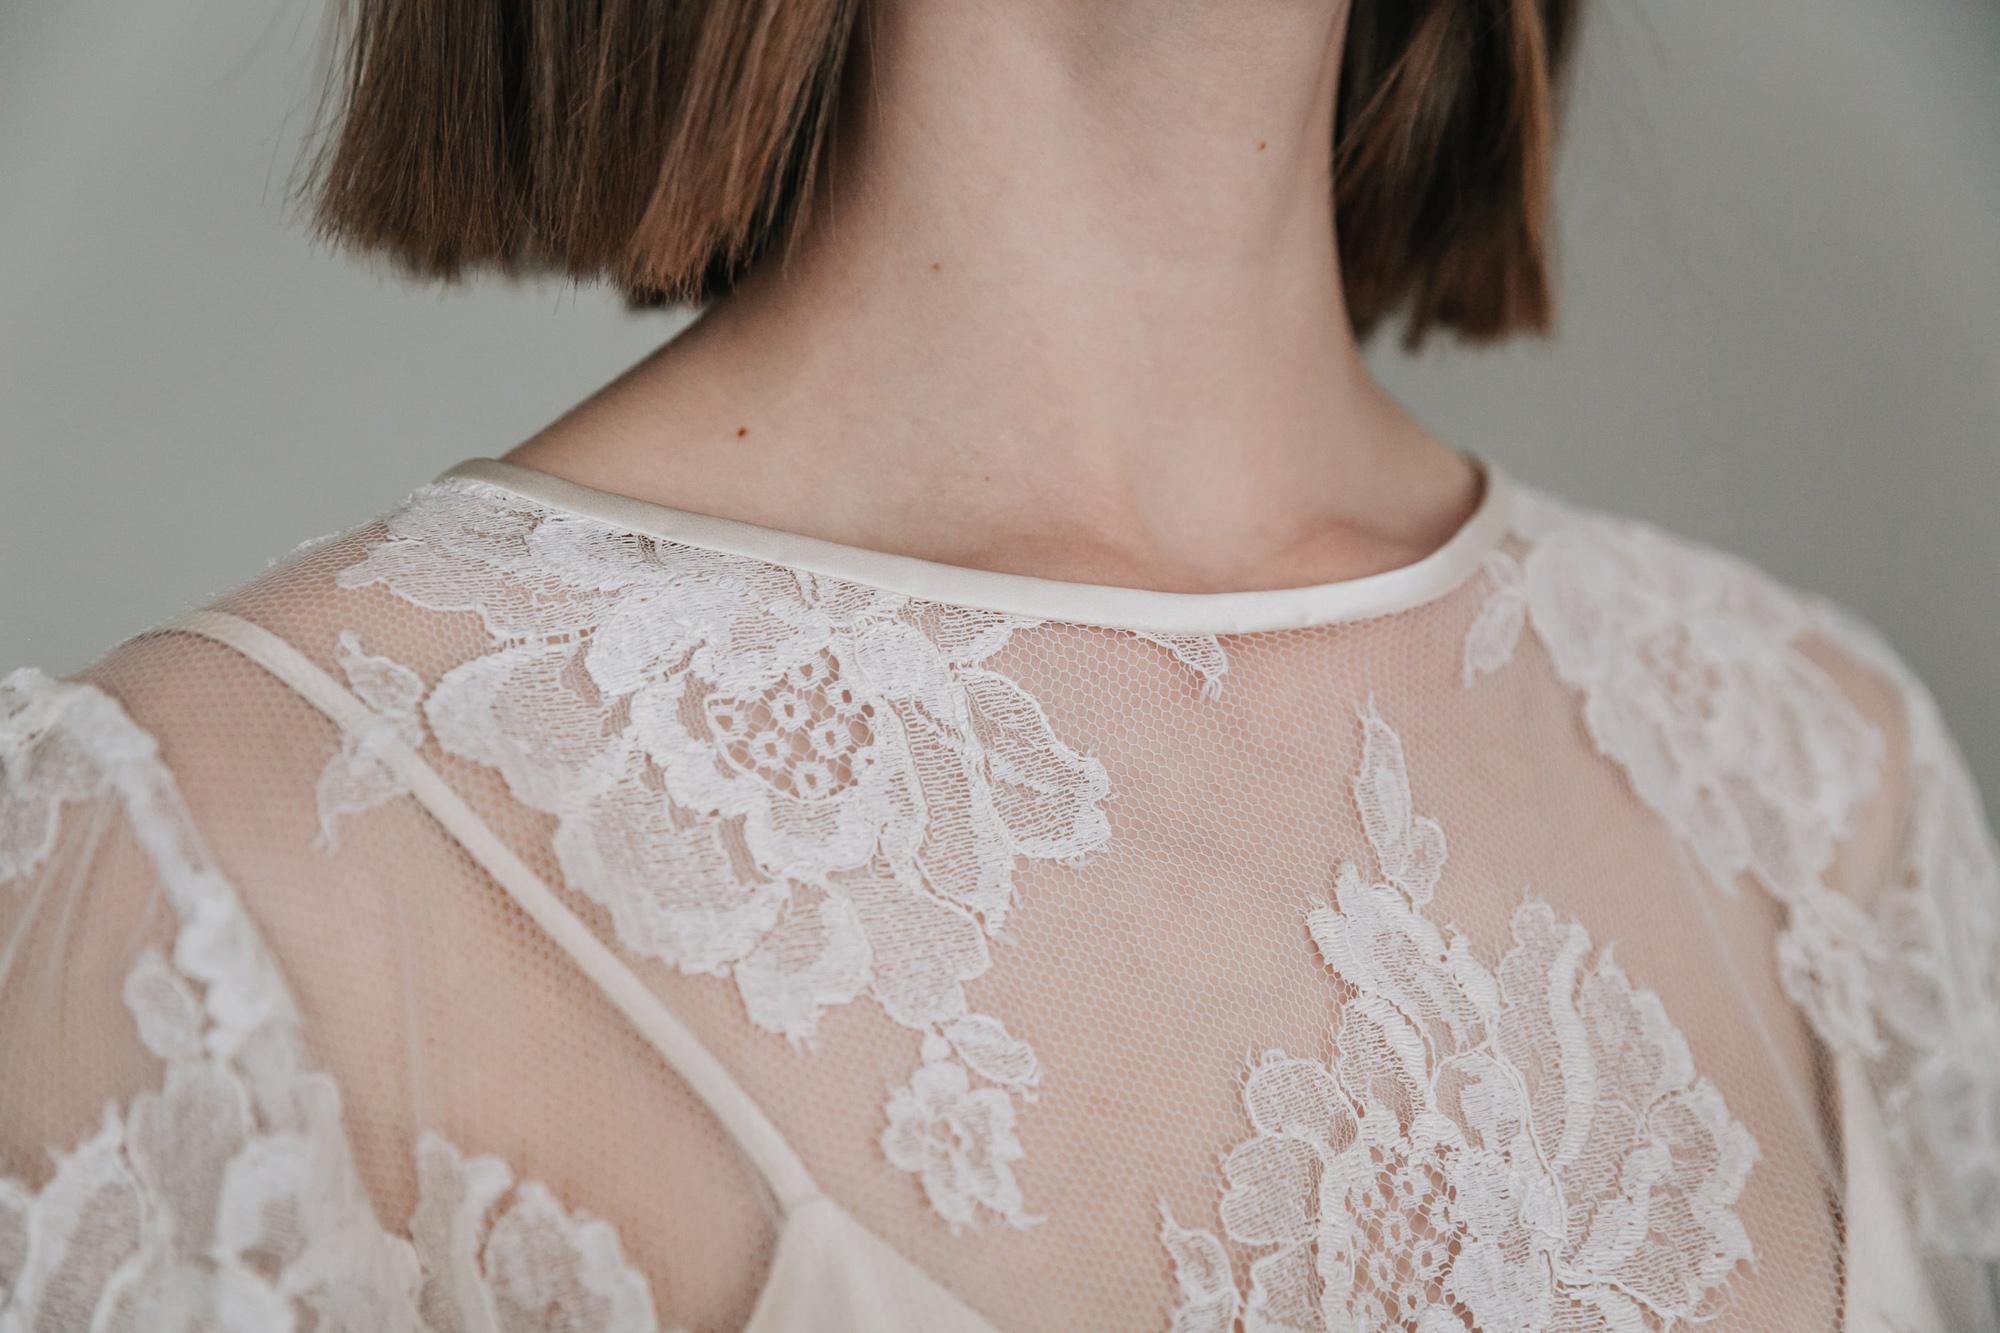 Kate-Beaumont-Sheffield-Rosa-Floral-Lace-Jacket-Thistle-Bias-Cut-Pearl-Silk-Wedding-Gown-6.jpg